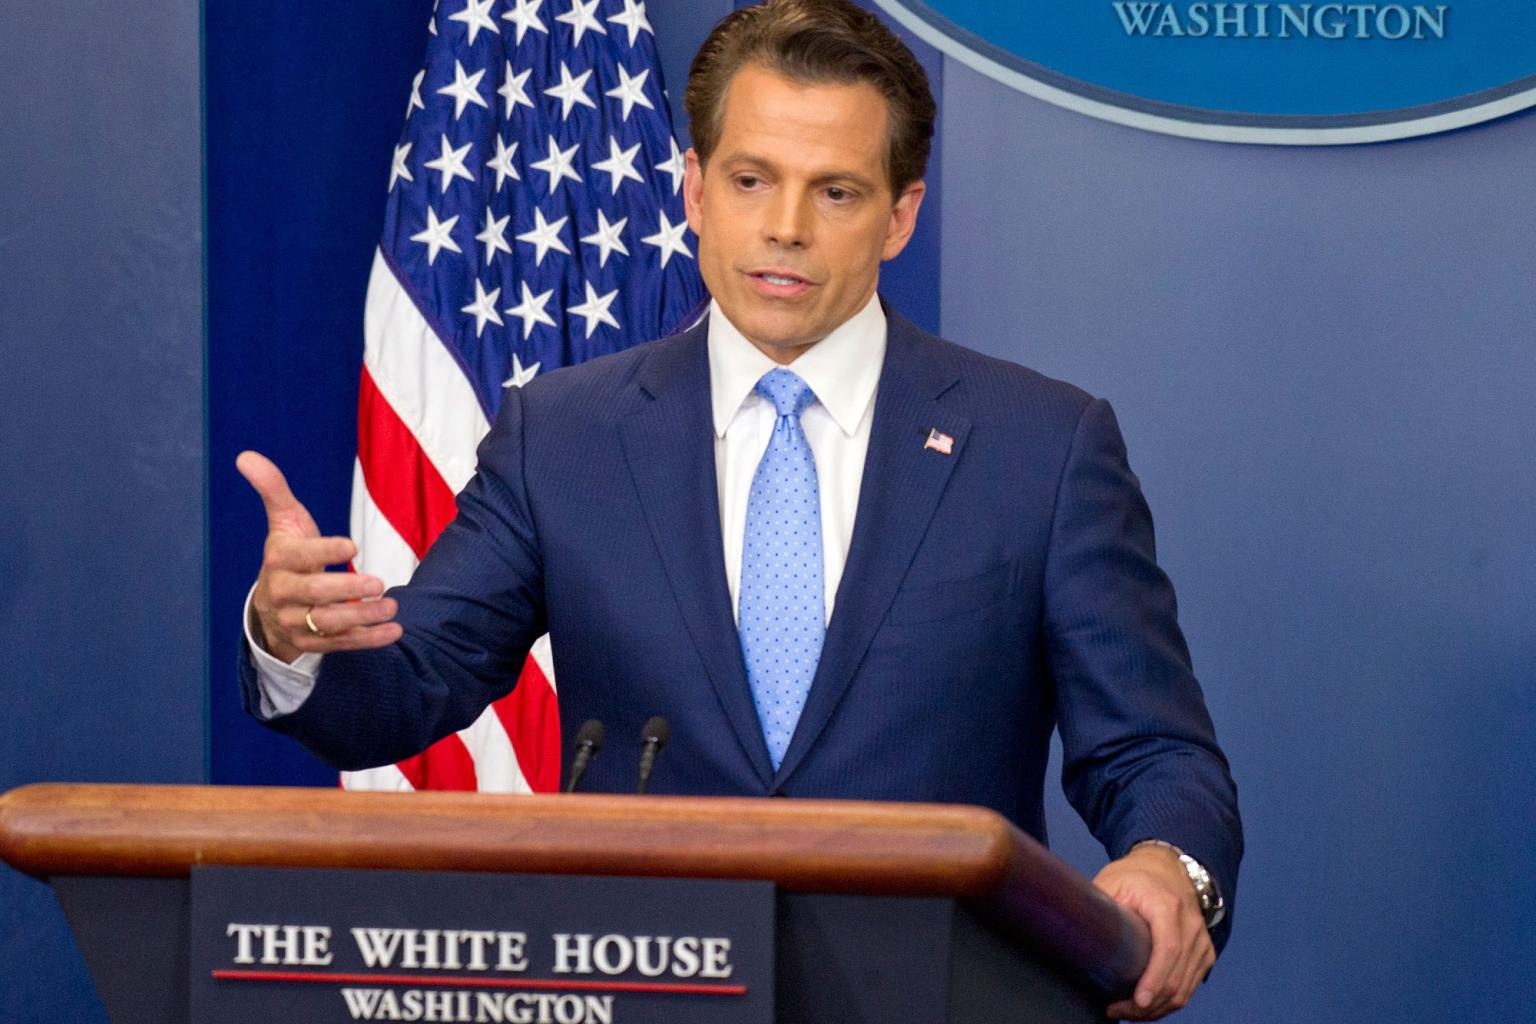 Anthony Scaramucci Tweets Joke About Rapid White House Firings 5 Days After He Was Abruptly    Ousted